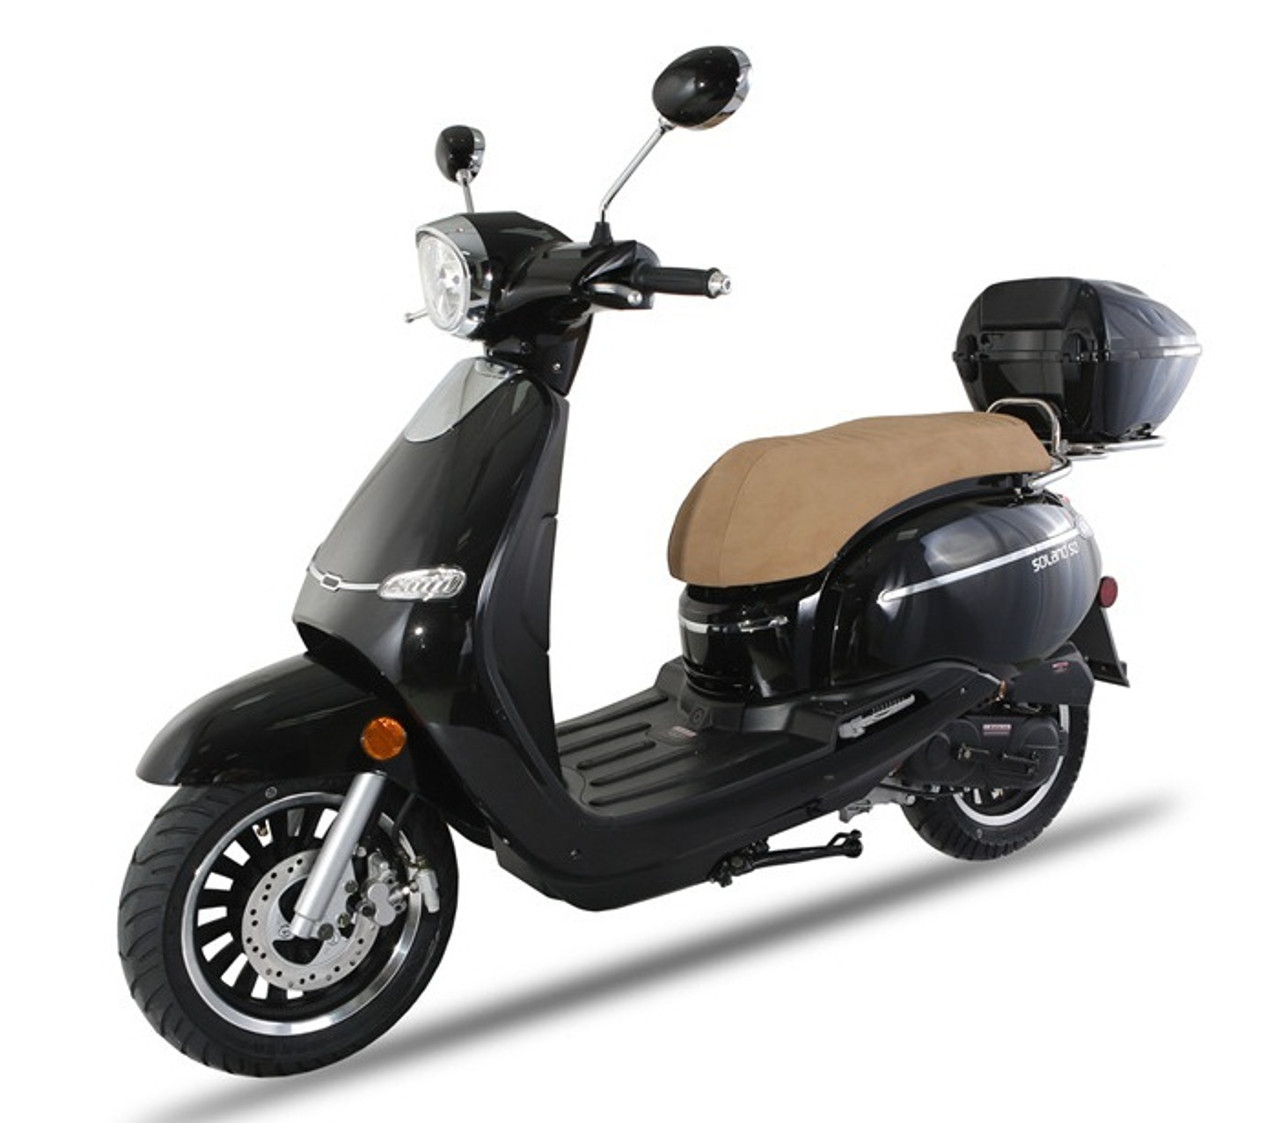 BMS Solano 50 Gas Scooter, Fully Automatic Electric / Kick Start